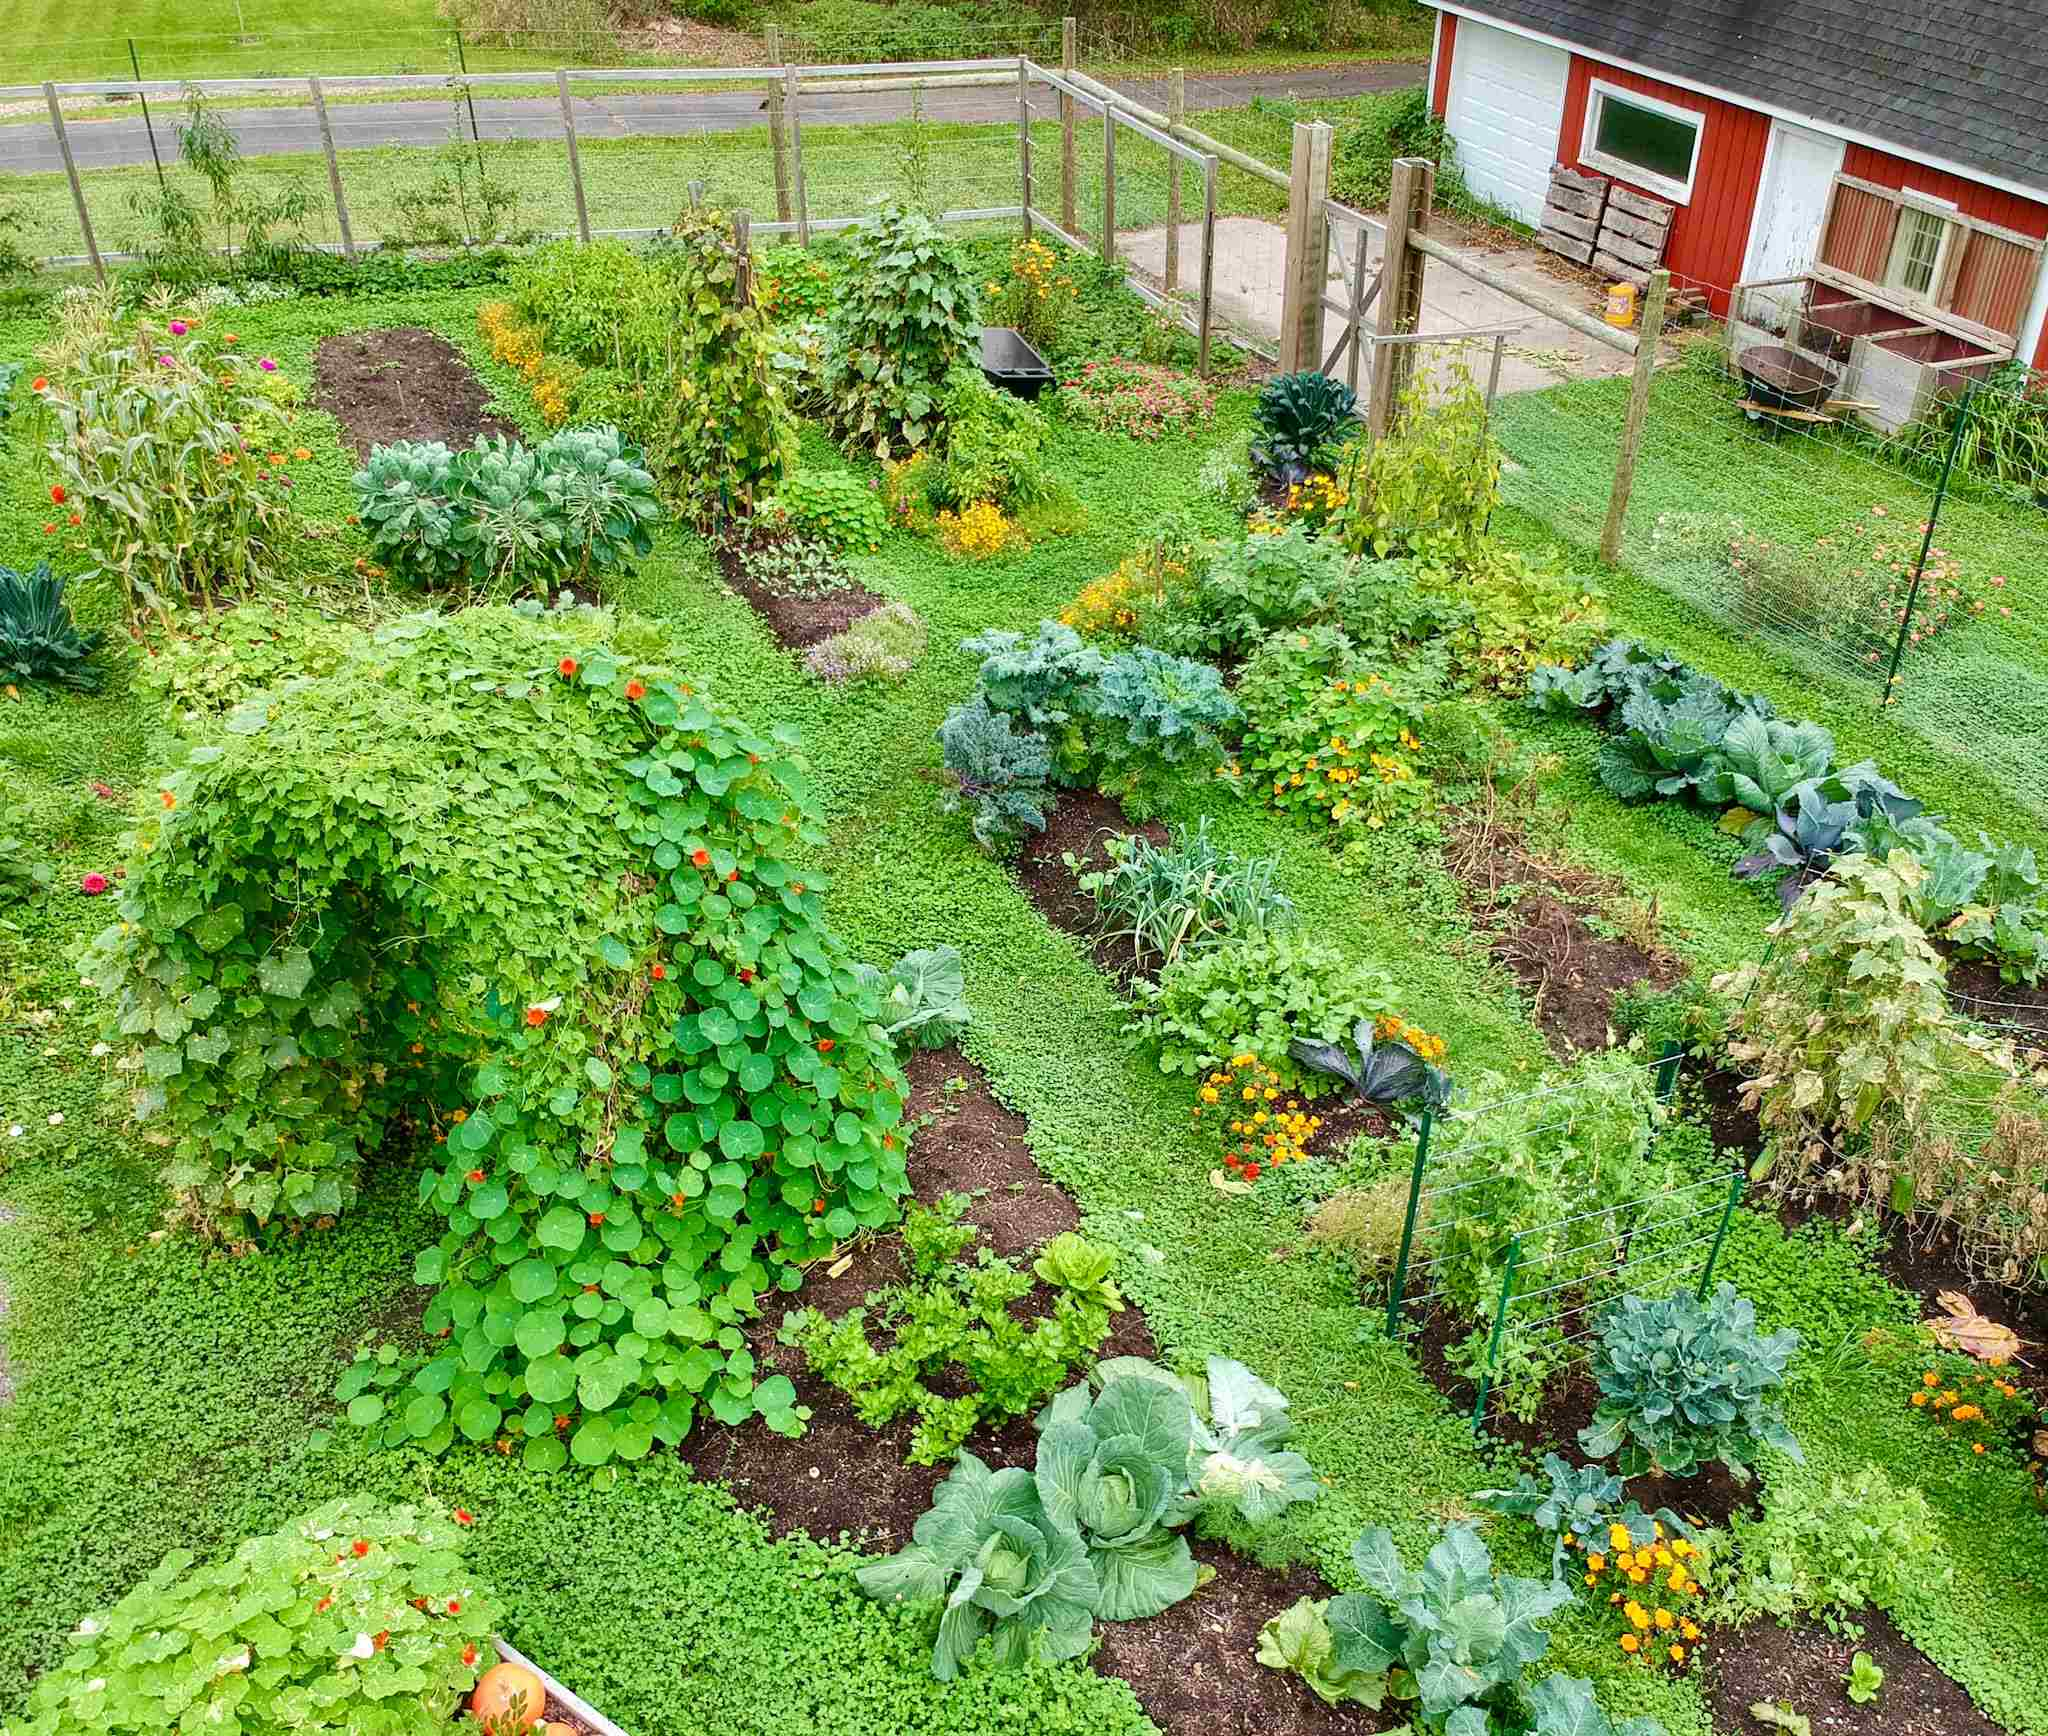 Raised Garden Beds Vs. In-Ground Beds: Pros & Cons